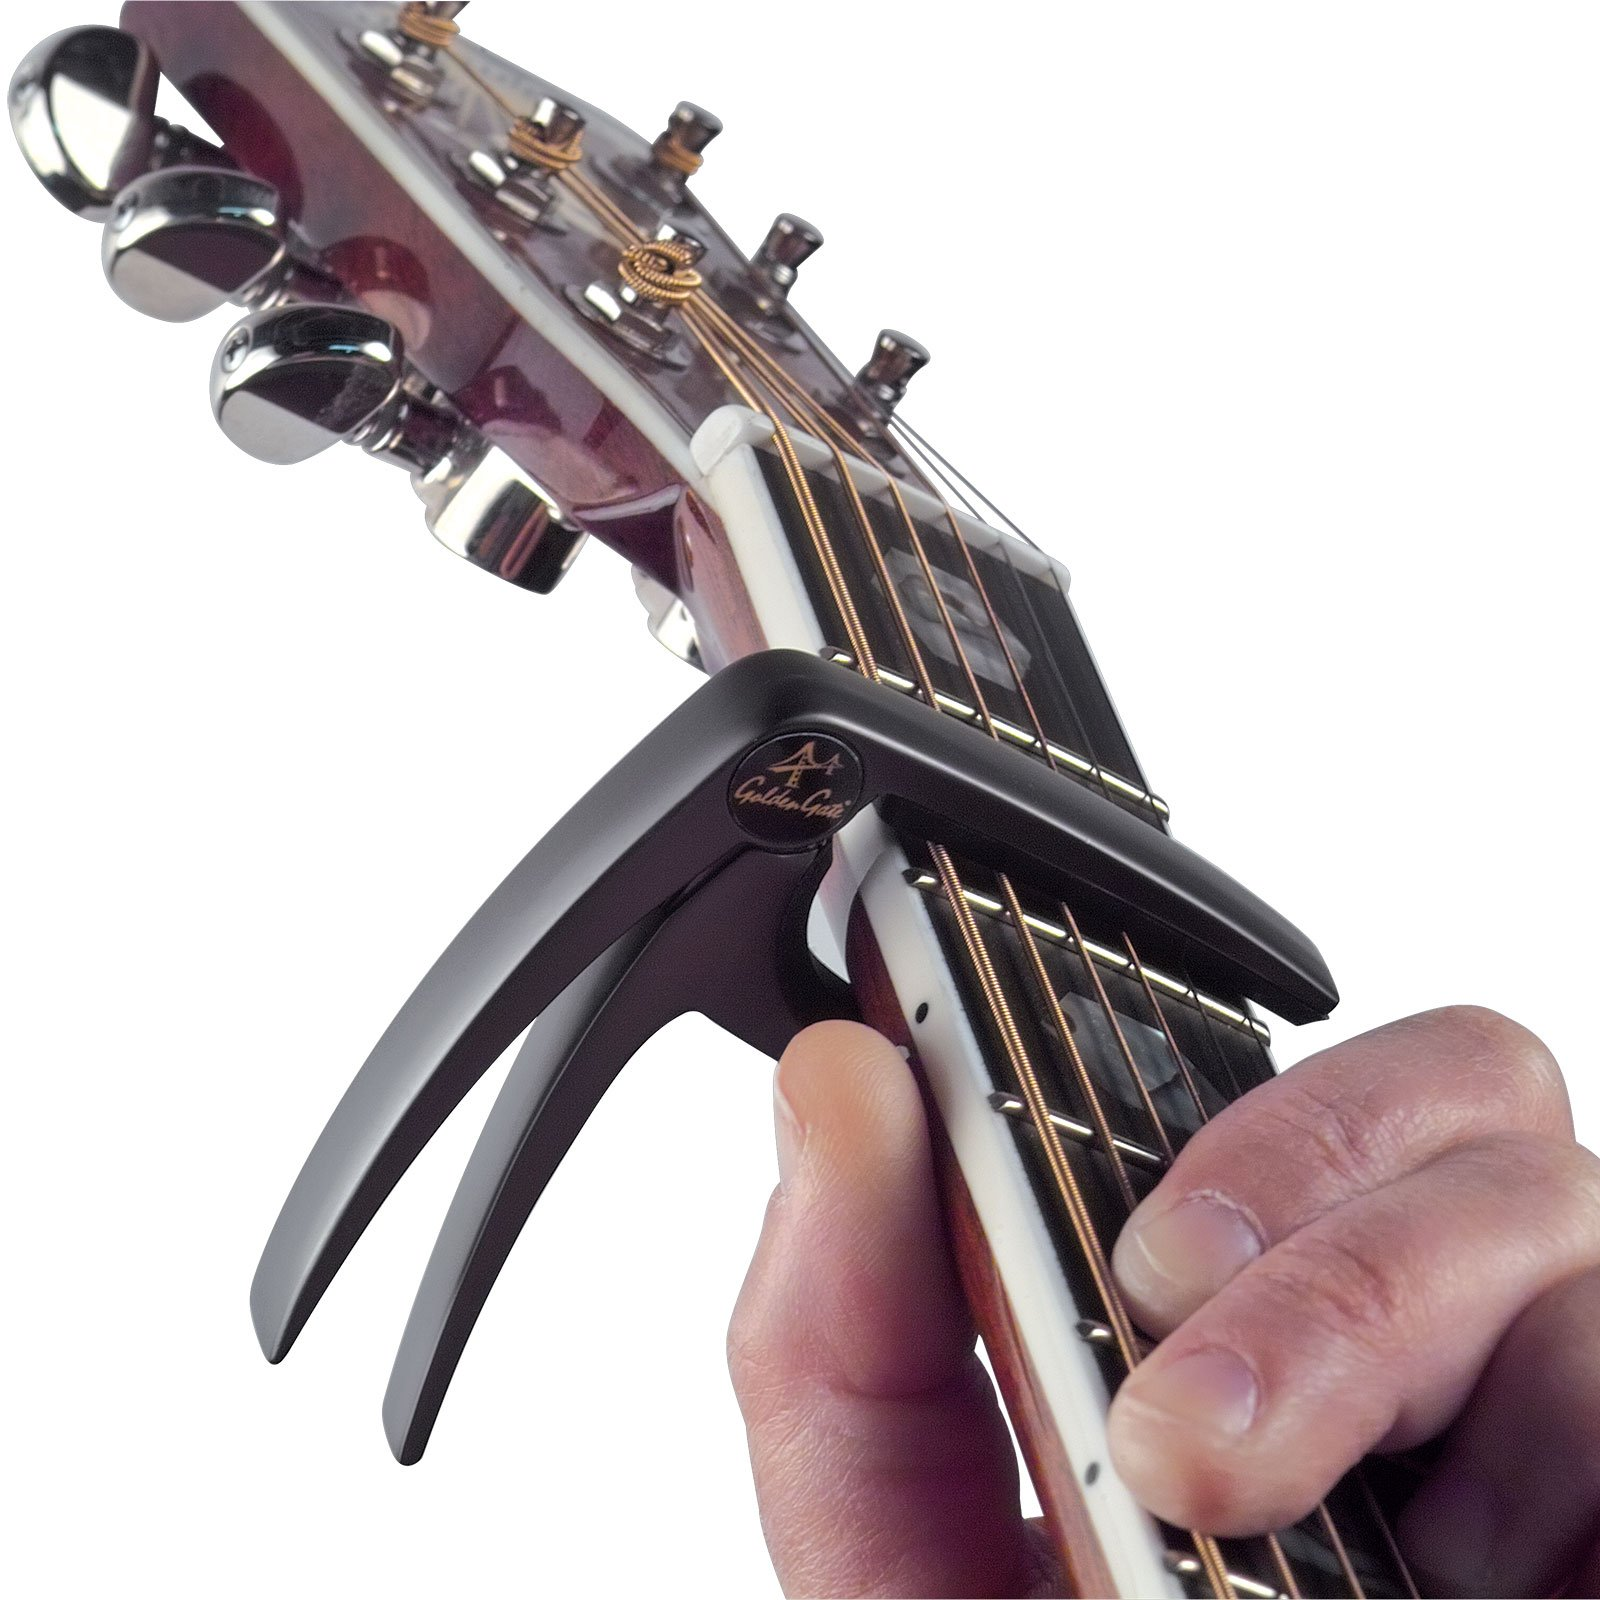 Golden Gate GC-50PK Acoustic Guitar Capo - Pink by Golden Gate (Image #2)